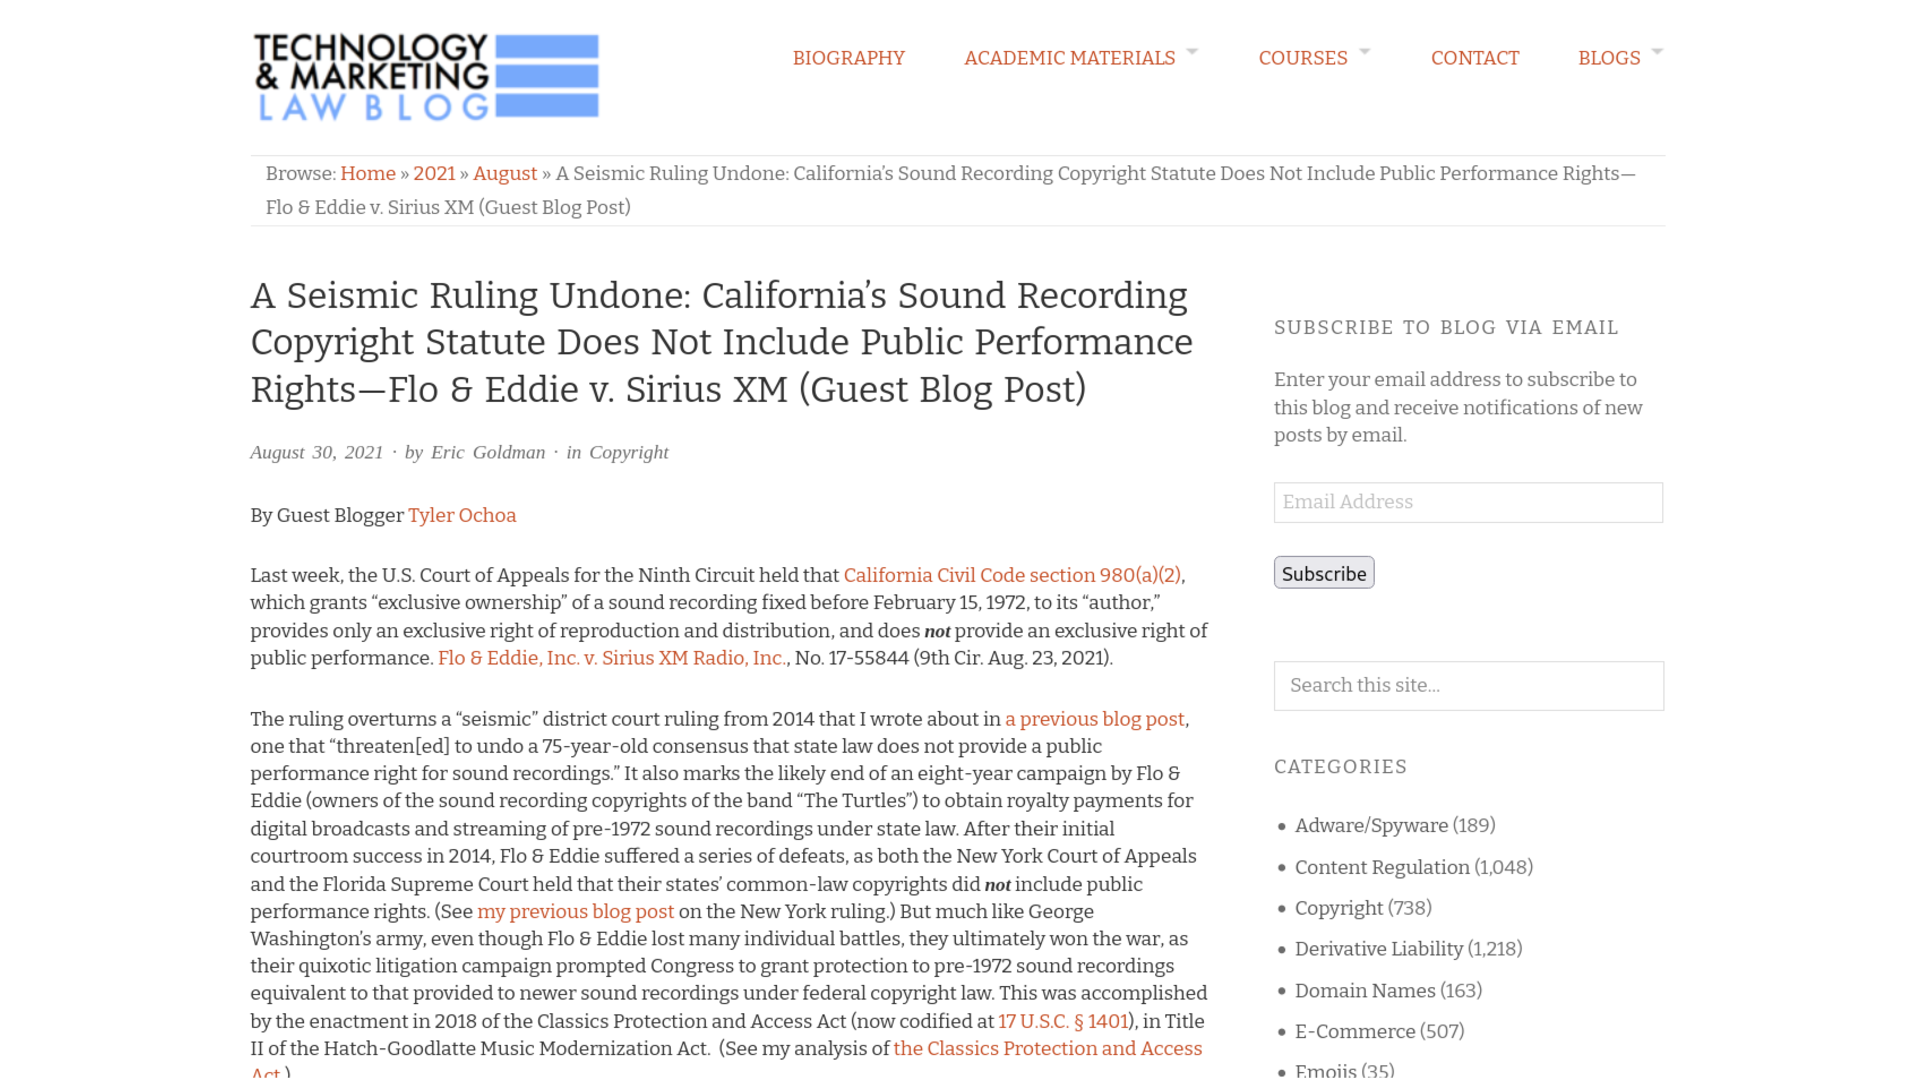 Fairness Rocks News A Seismic Ruling Undone: California's Sound Recording Copyright Statute Does Not Include Public Performance Rights—Flo & Eddie v. Sirius XM (Guest Blog Post)